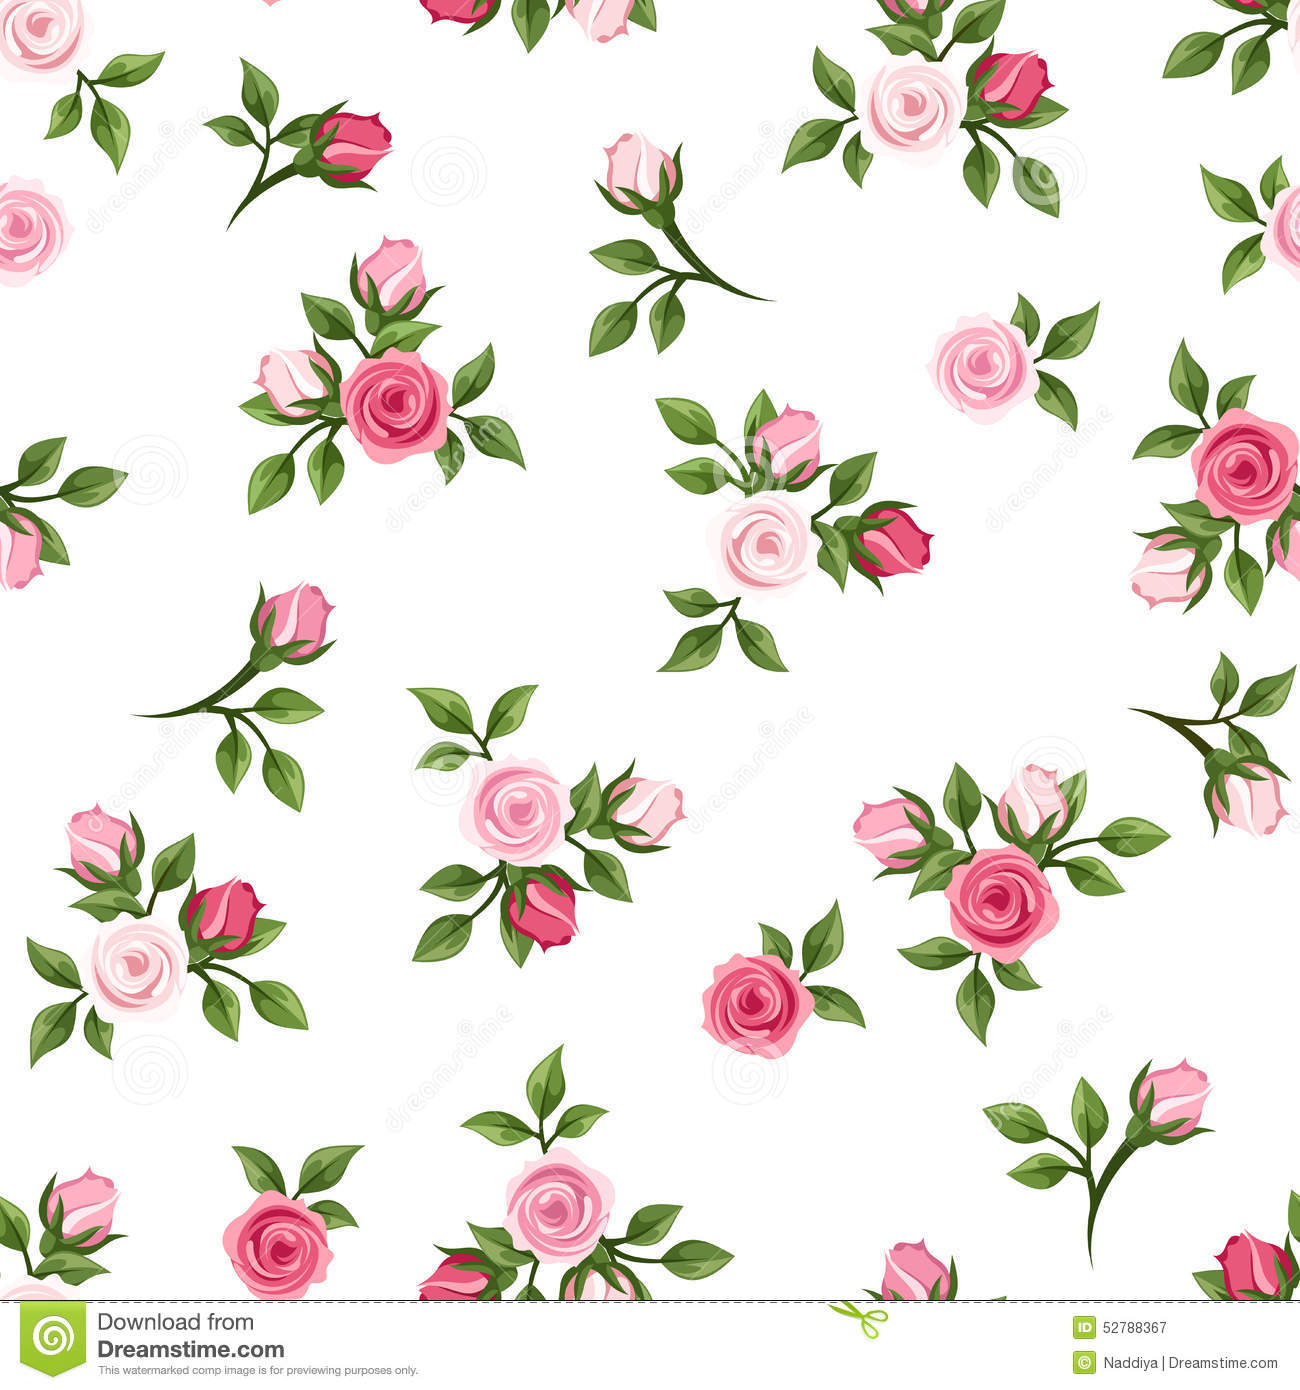 Orange Fall Peony Wallpaper Seamless Pattern With Pink Roses Vector Illustration